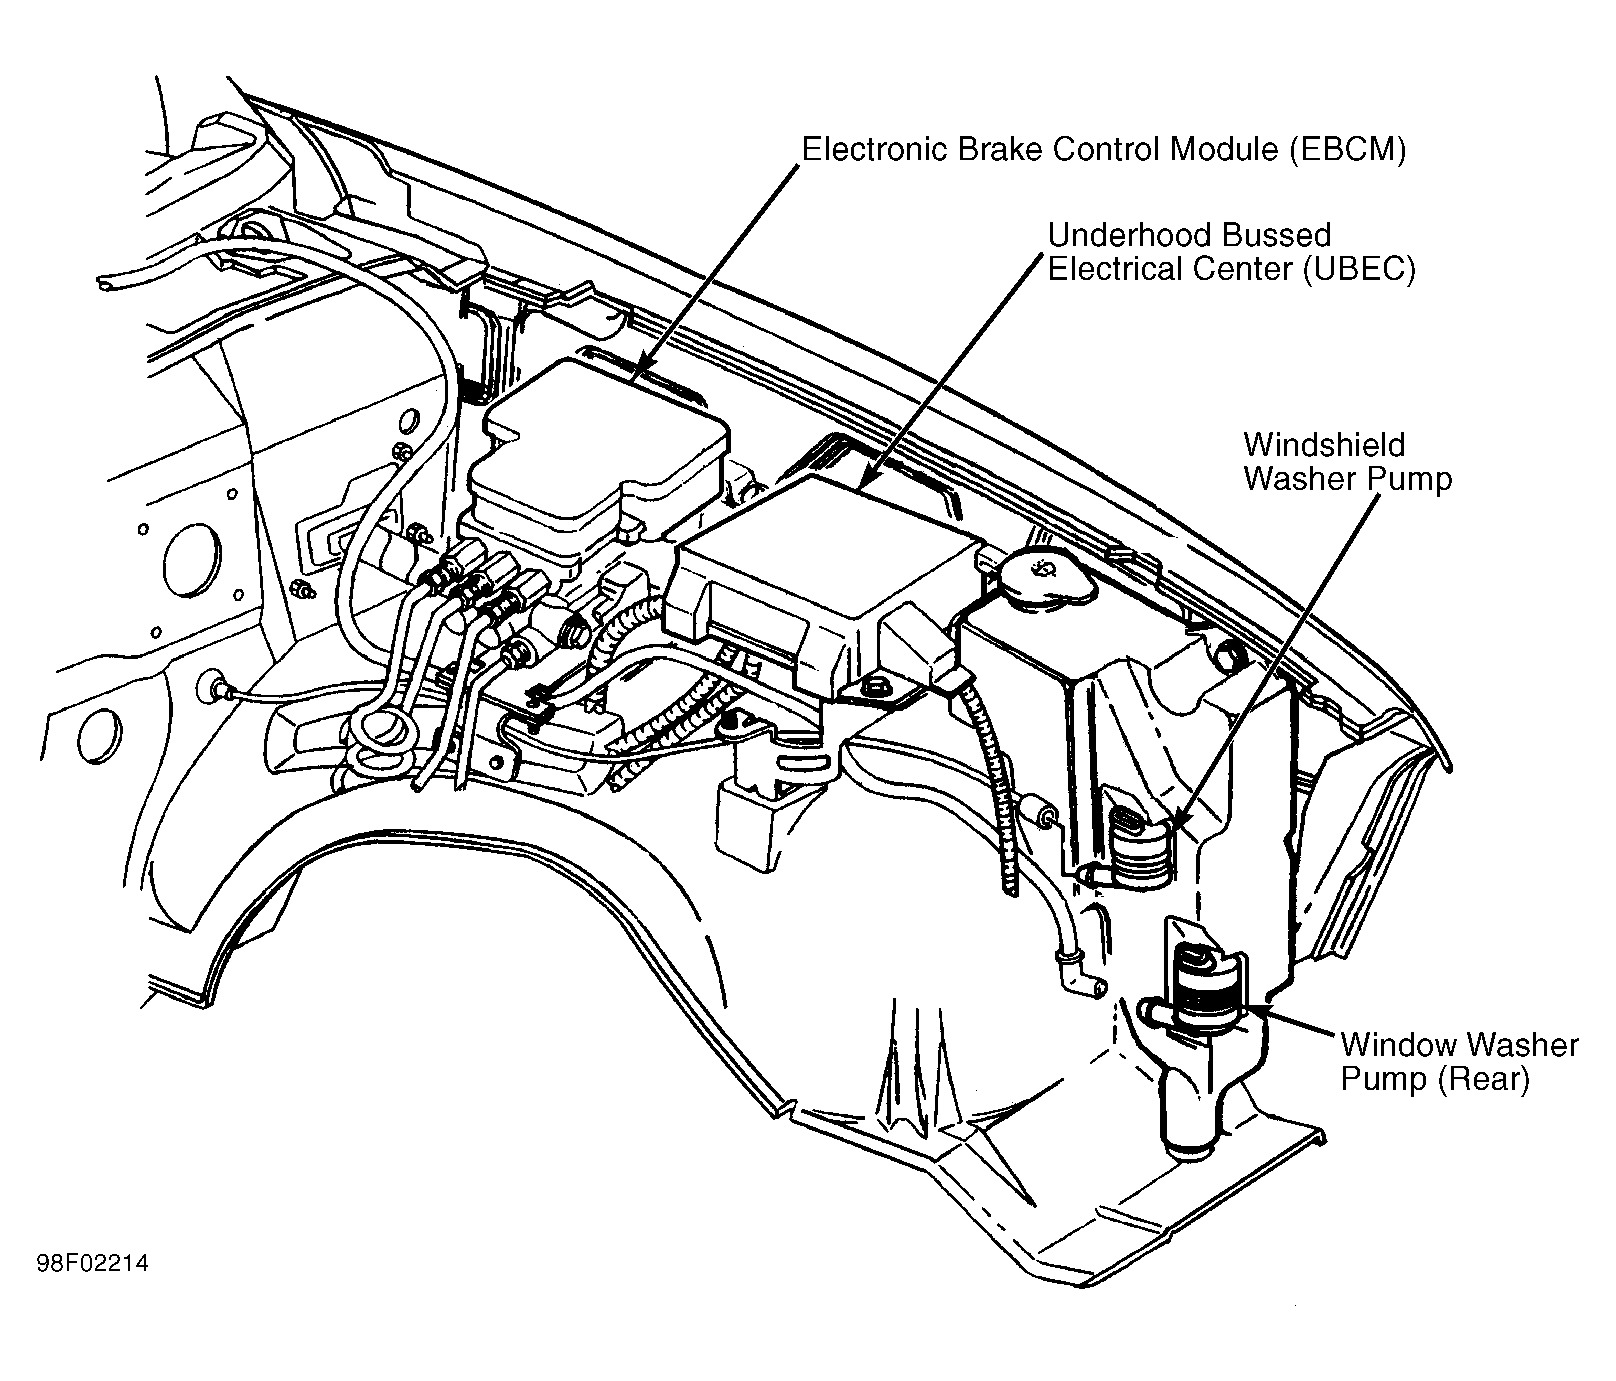 hight resolution of 1998 gmc sonoma fuse box detailed schematics diagram rh antonartgallery com 1995 gmc sonoma 1993 gmc